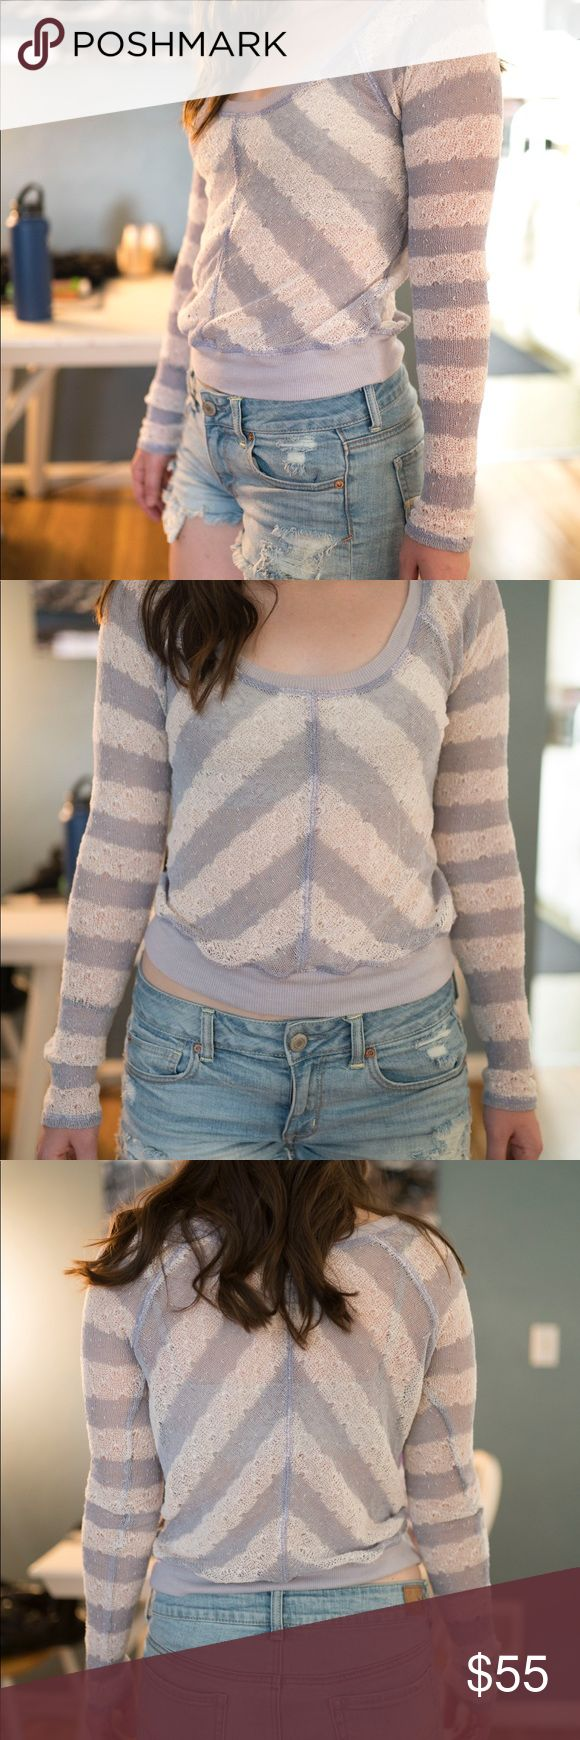 Free People striped long sleeved top. Size S Stripped lavender and white long sleeved shirt. Size S with tighter sleeves and shorter at the waistline. Loose knit. Worn only a few times with no flaws Free People Tops Tees - Long Sleeve